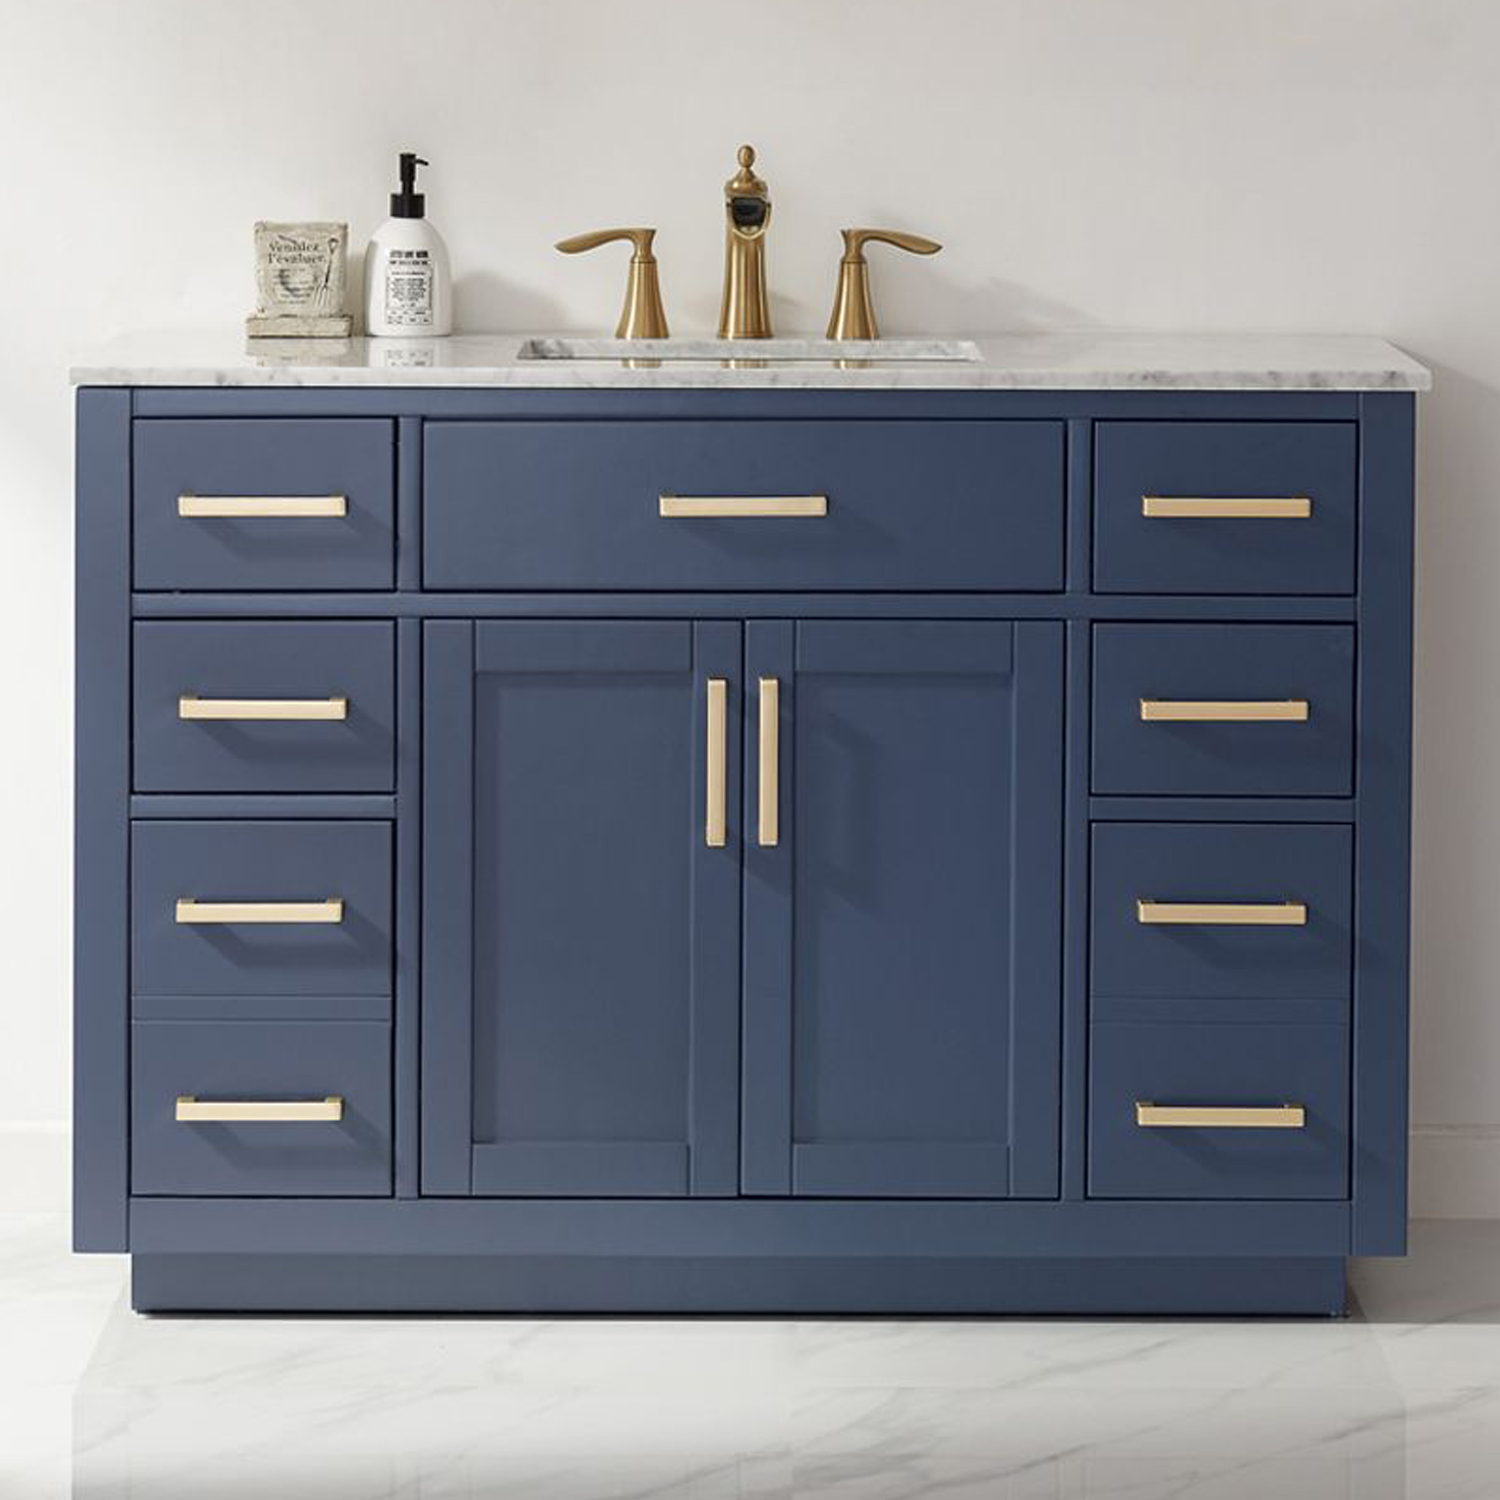 """Issac Edwards Collection 48"""" Single Bathroom Vanity Set in RoyalBlue and Carrara White Marble Countertop"""